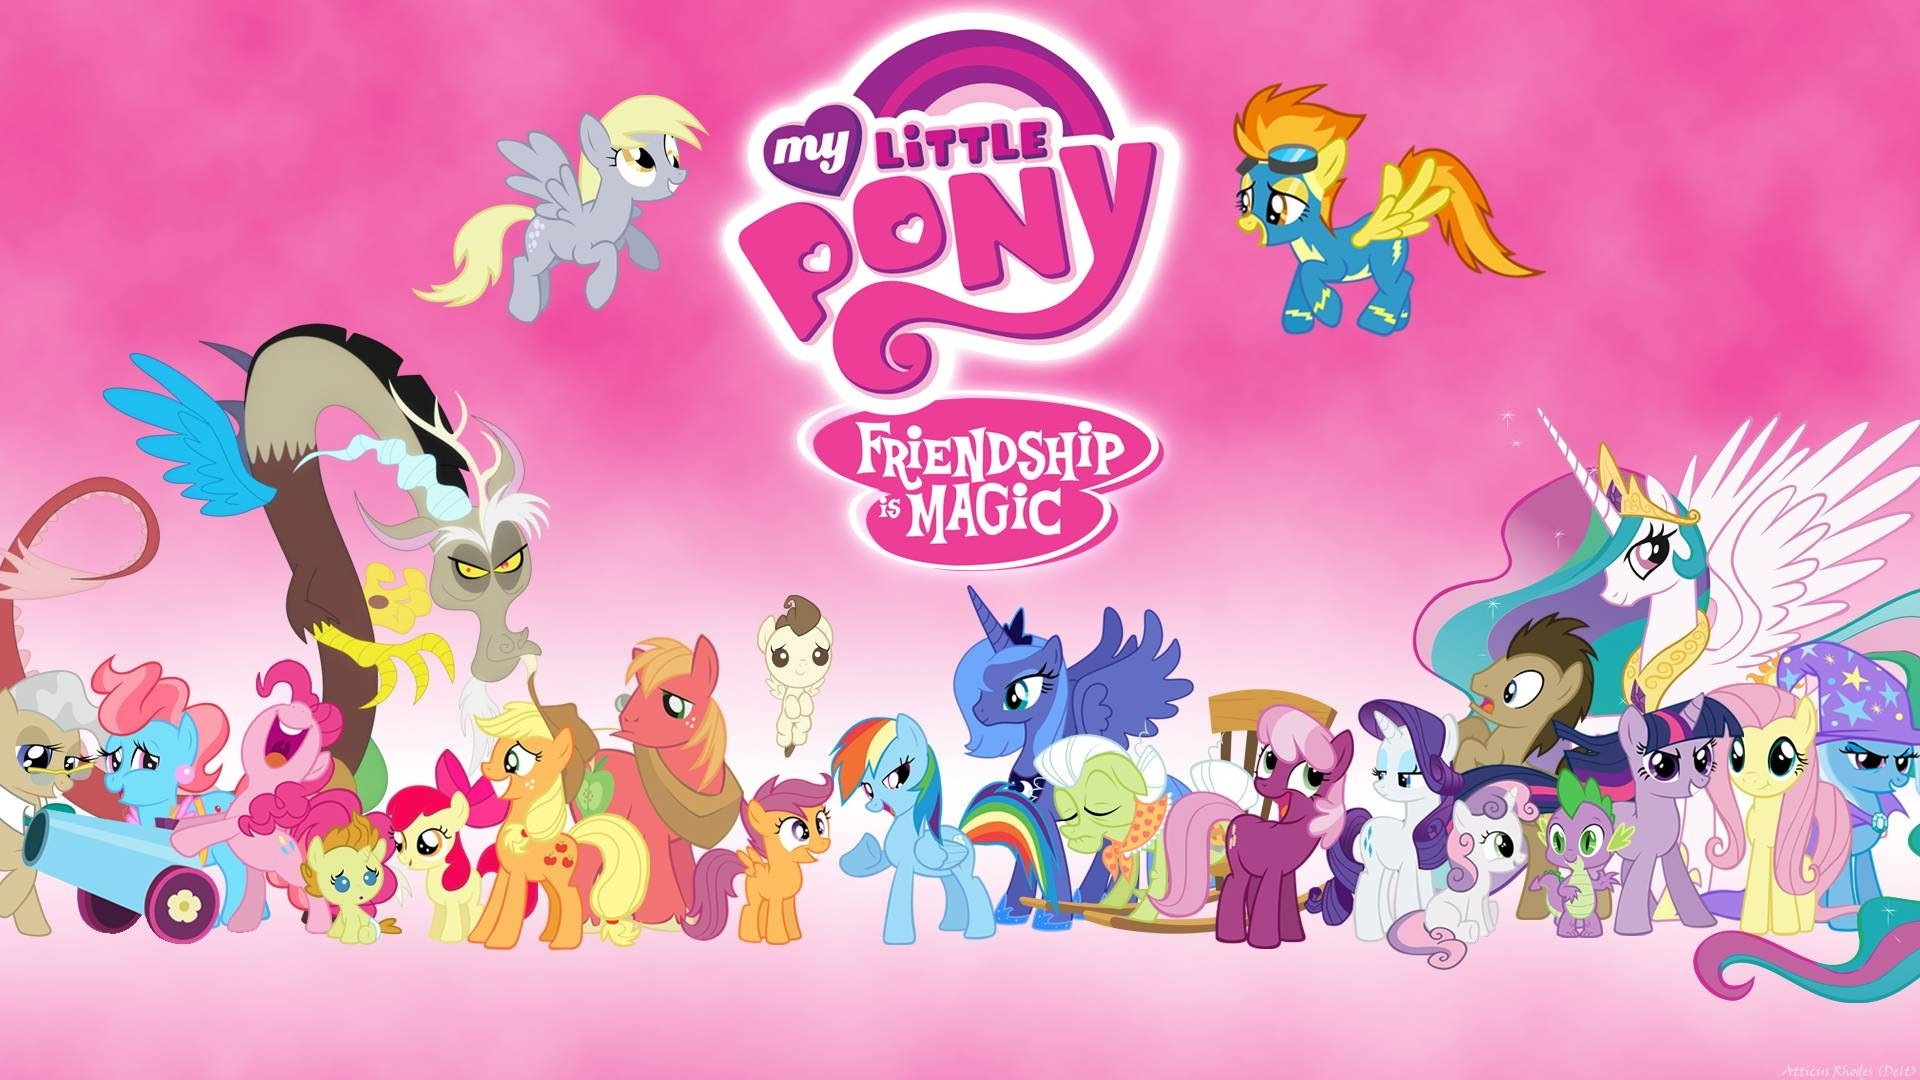 my little pony free wallpapers - wallpaper cave